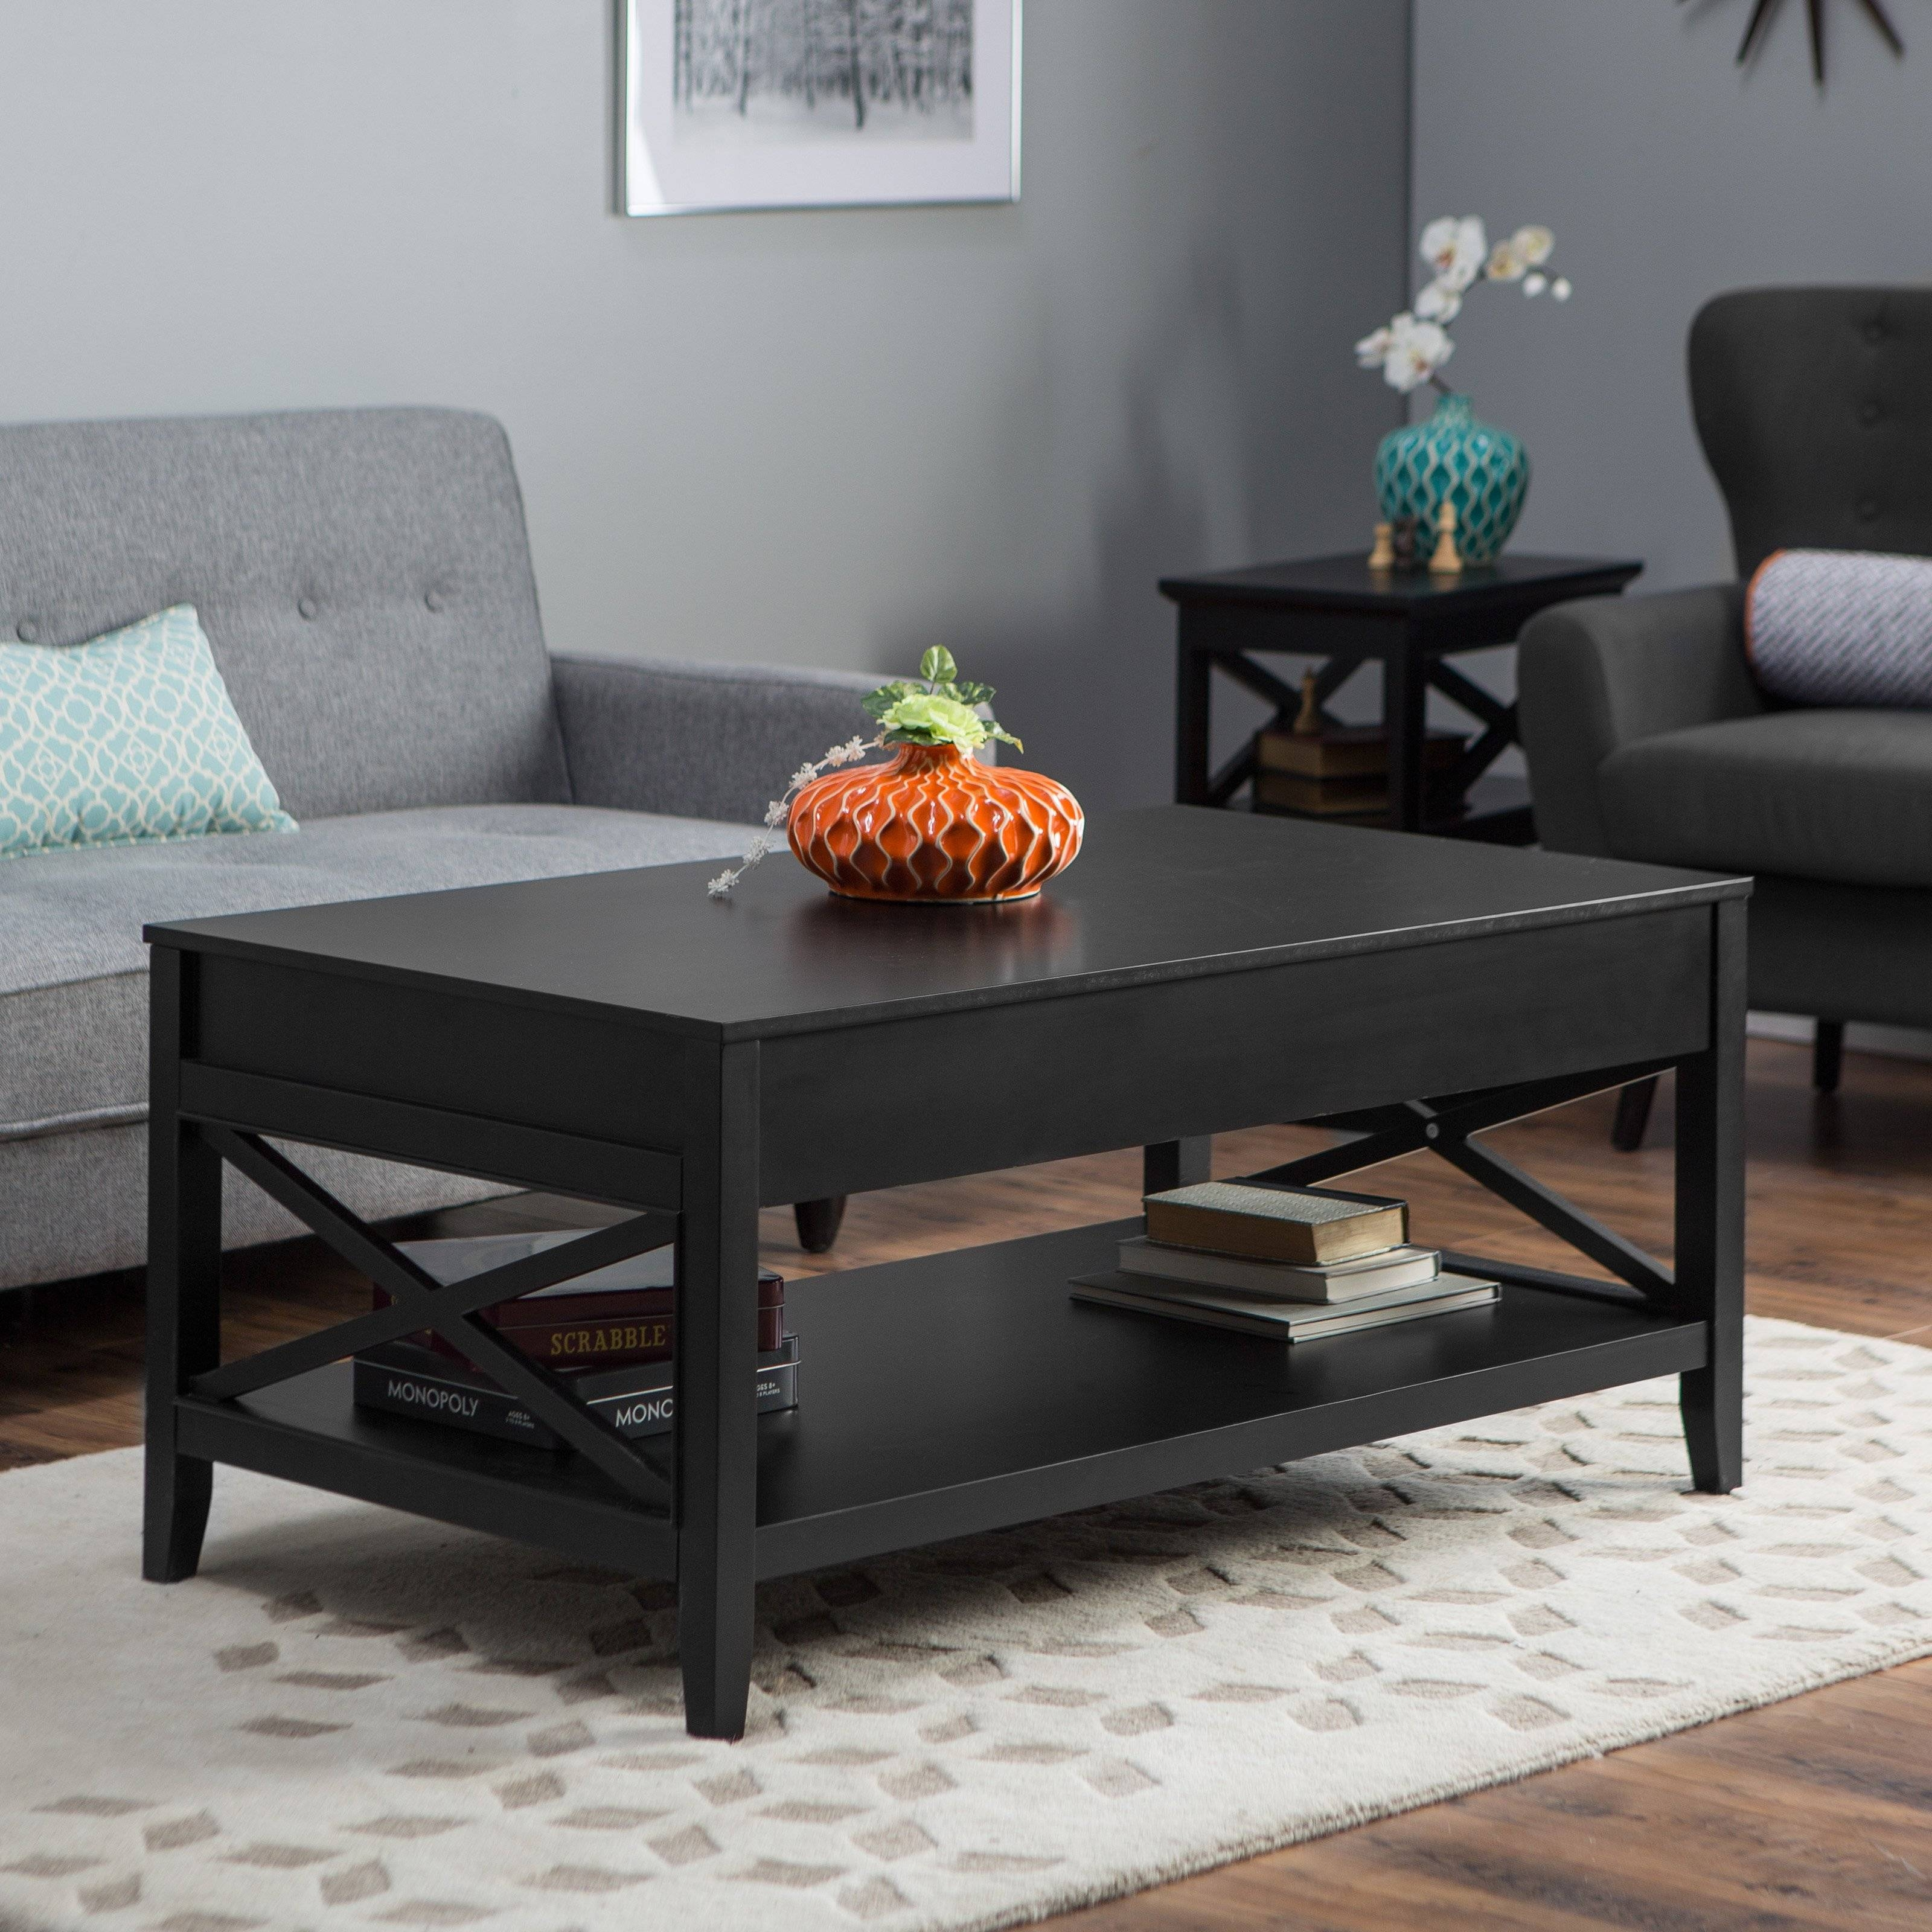 Belham Living Hampton Storage And Lift Top Coffee Table | Hayneedle Within Lift Coffee Tables (View 20 of 30)